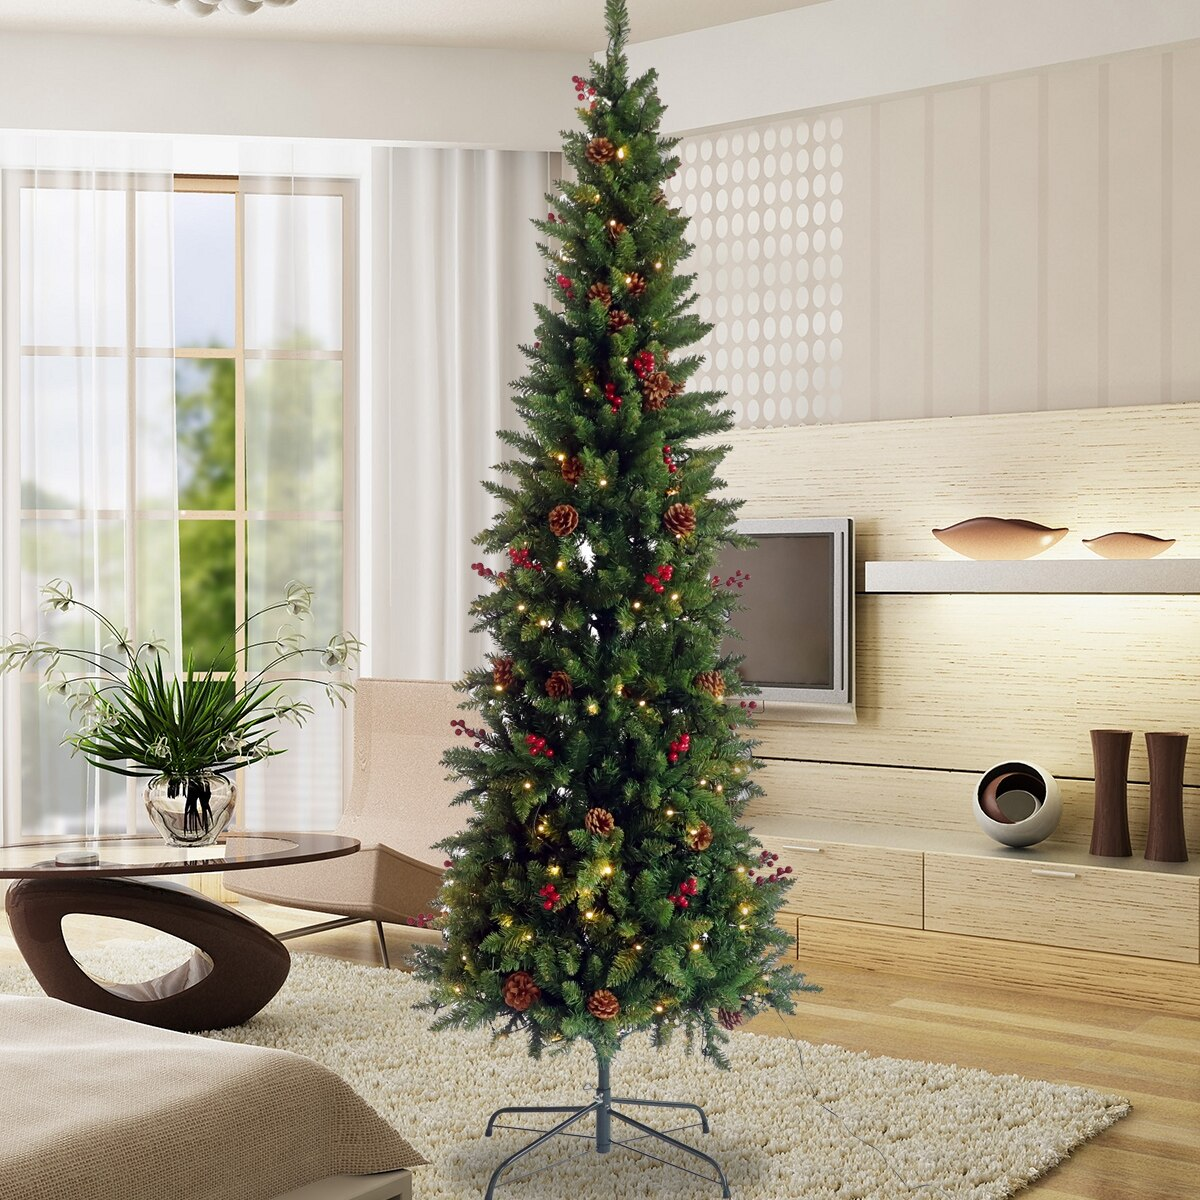 Vinsic Christmas Tree Artificial Slim Christmas Tree With 300 Warm White Lights Pre Lit Pencil Feel Real Skinny Fir Tree With Cones And Berries 7 5ft With Foldable Metal Stand Walmart Com Walmart Com